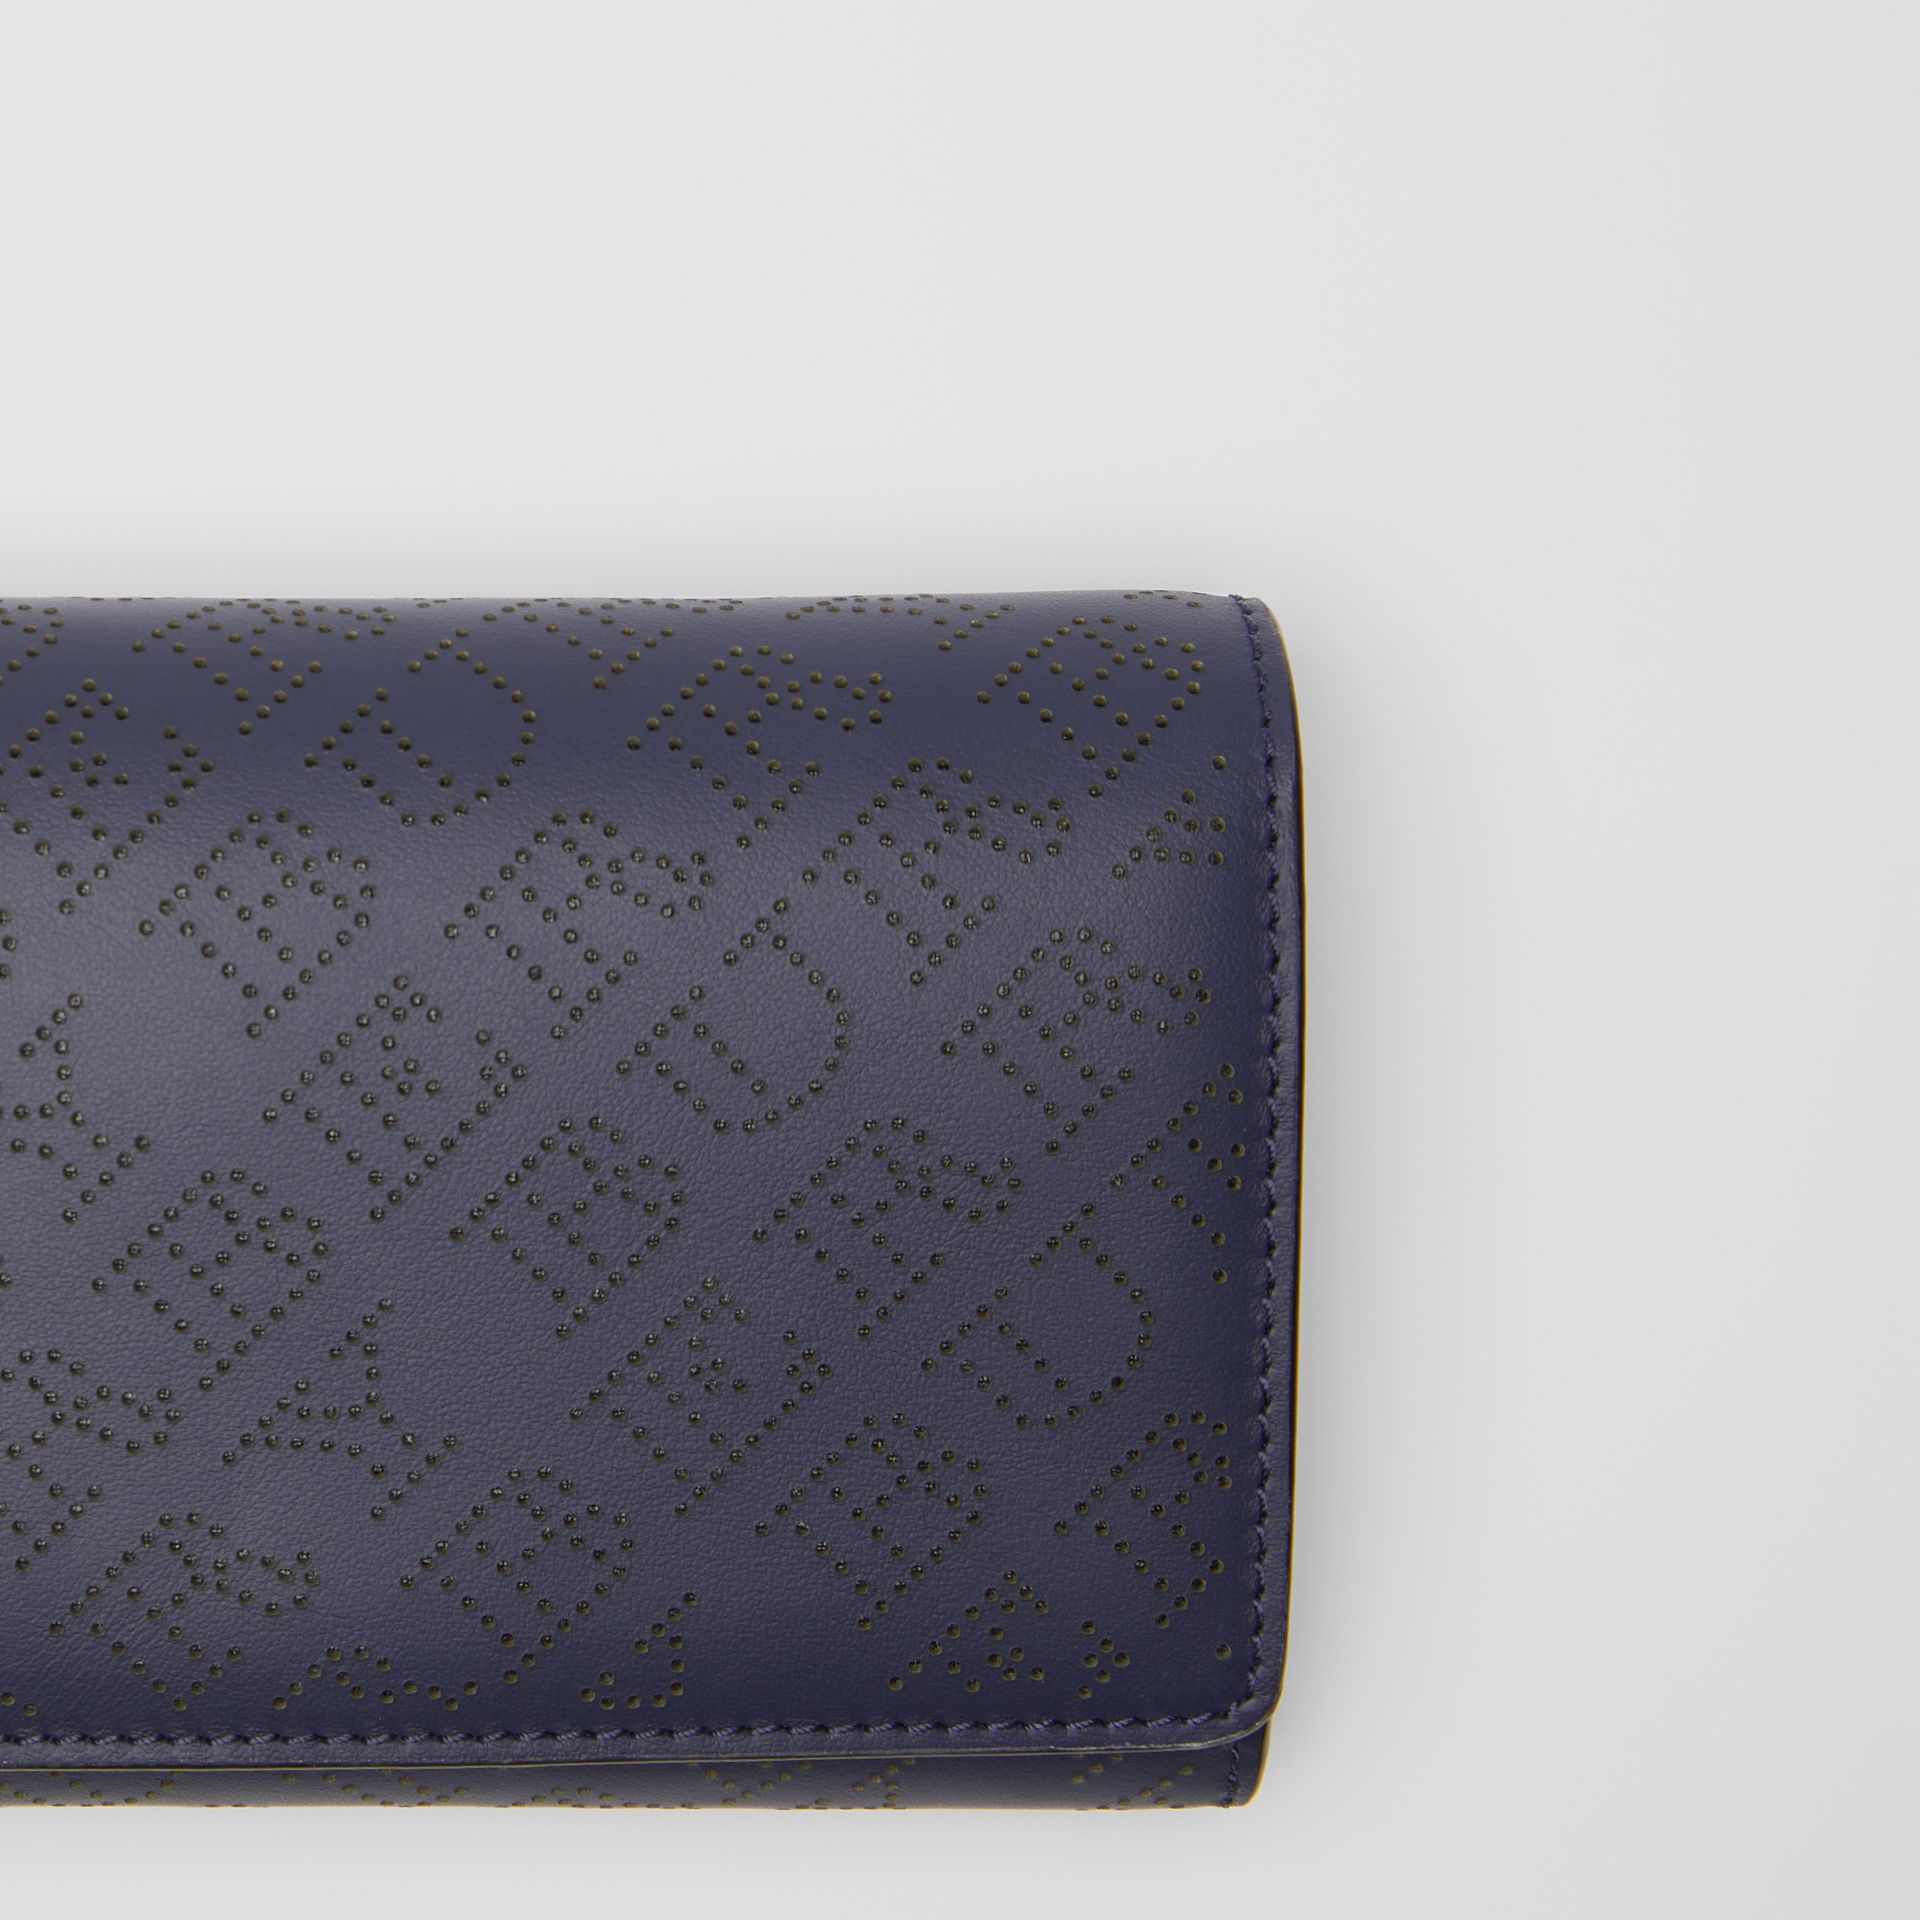 Perforated Logo Leather Wallet with Detachable Strap in Navy - Women | Burberry - gallery image 1